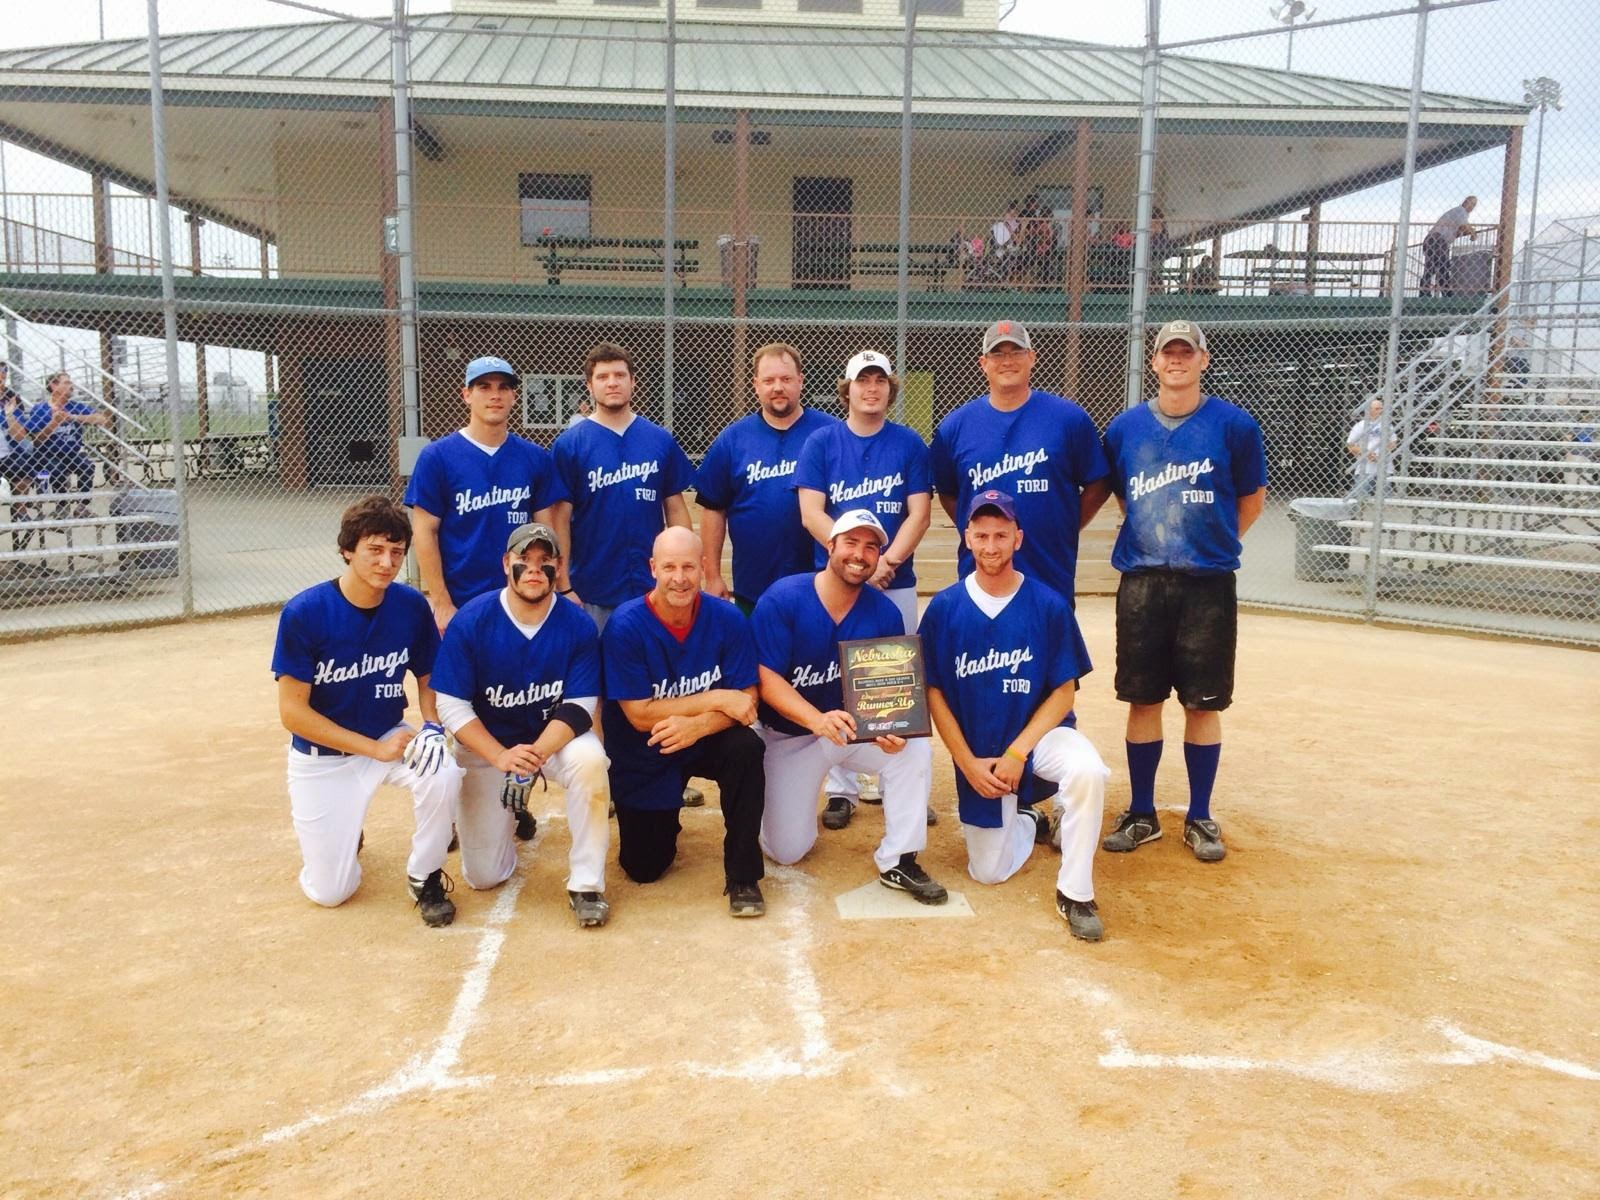 2014 Hastings Ford Lincoln Men s Slow Pitch Softball League